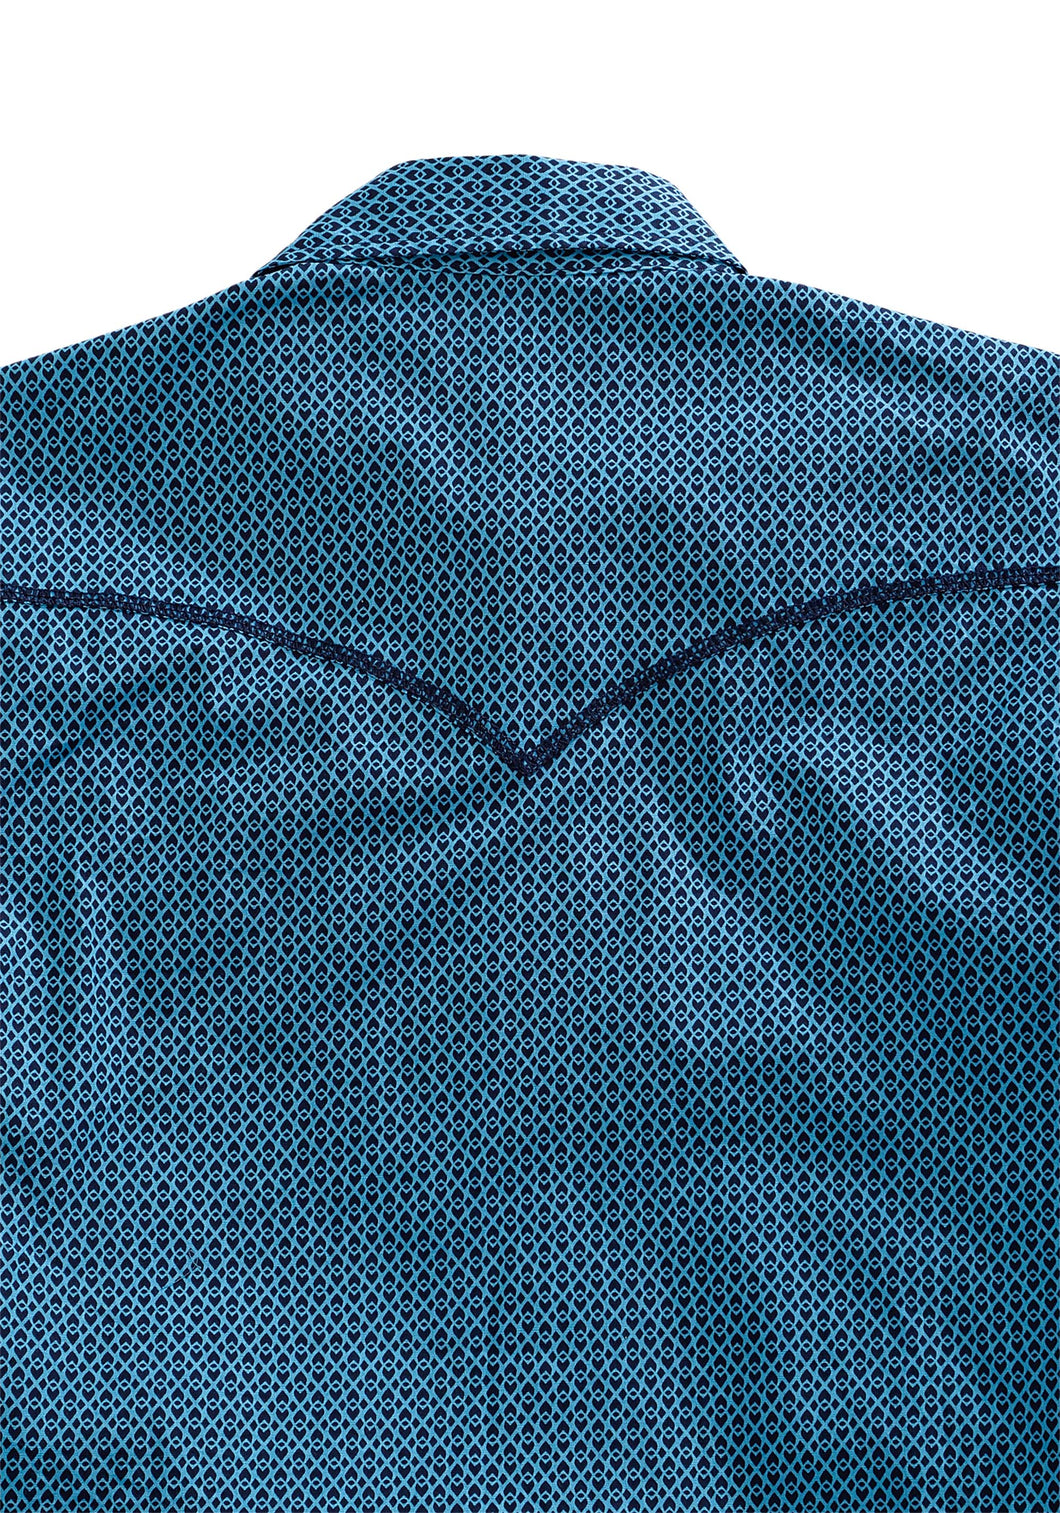 Tin Haul Collection Tinhaul Mens Long Sleeve Shirt 1338 Knotted Geo Print